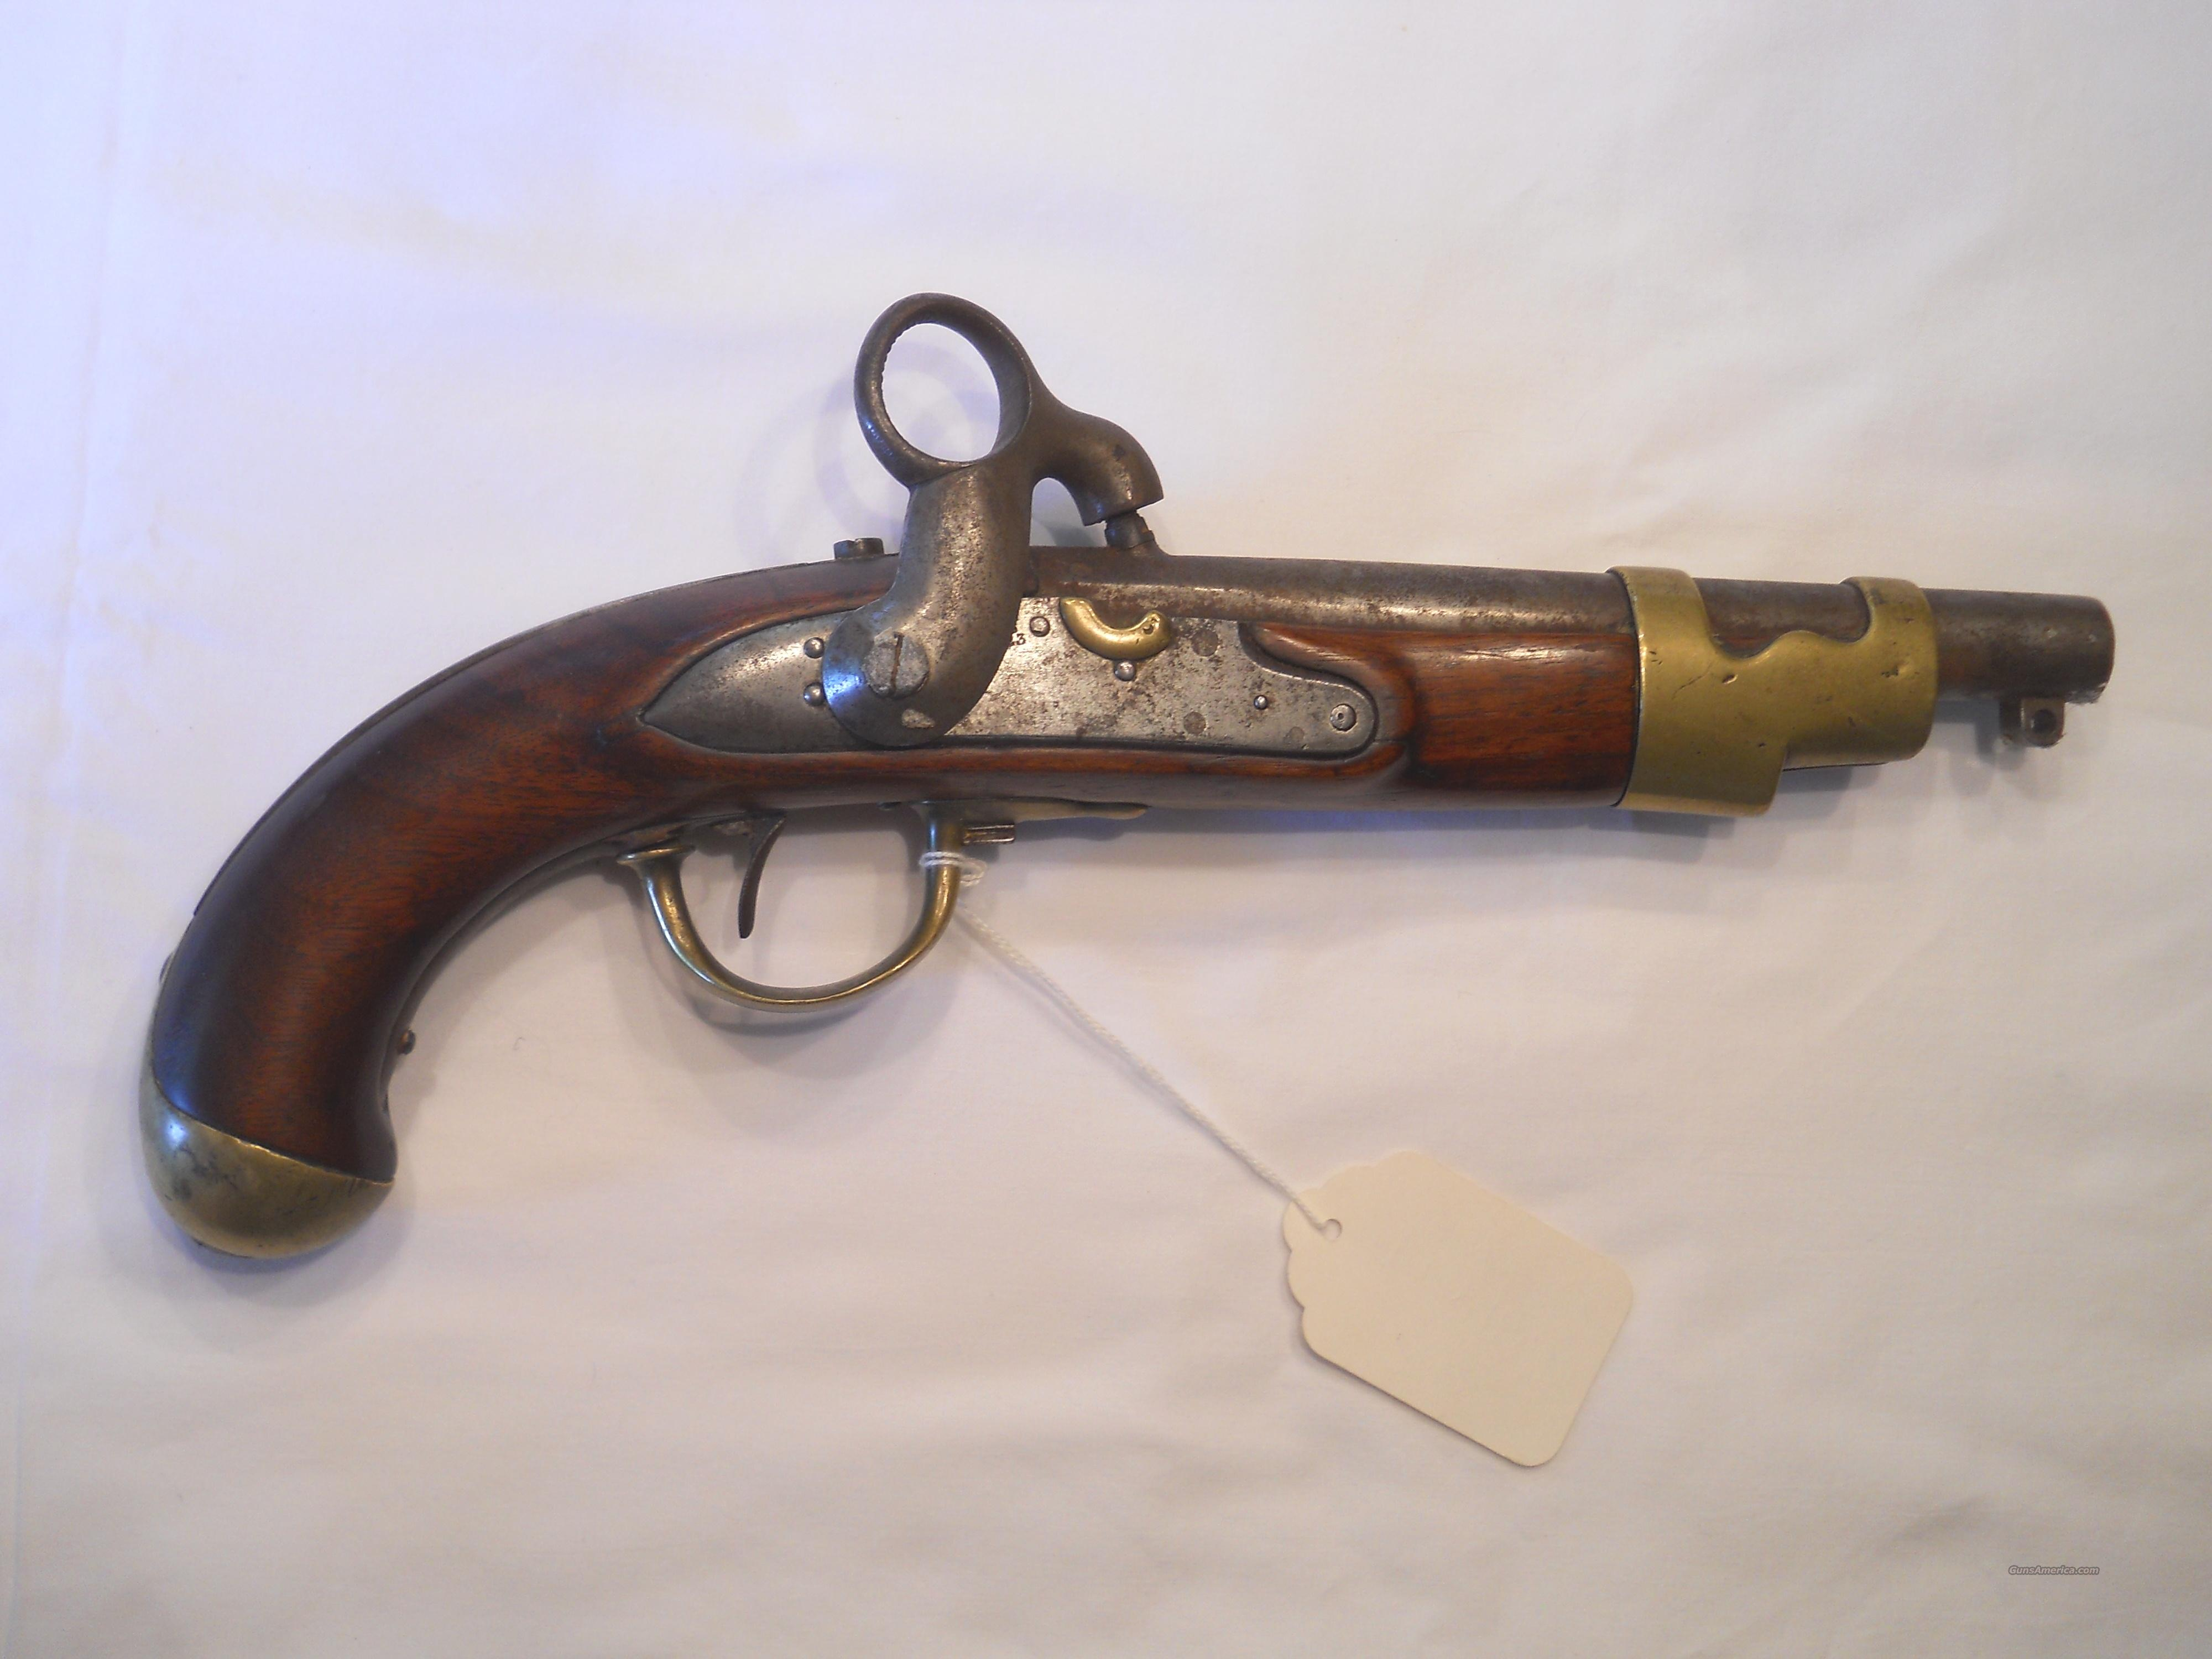 1823 EUROPEAN ANTIQUE PERCUSSION CONVERSION .69 CALIBER PISTOL  Guns > Pistols > Antique (Pre-1899) Pistols - Perc. Misc.